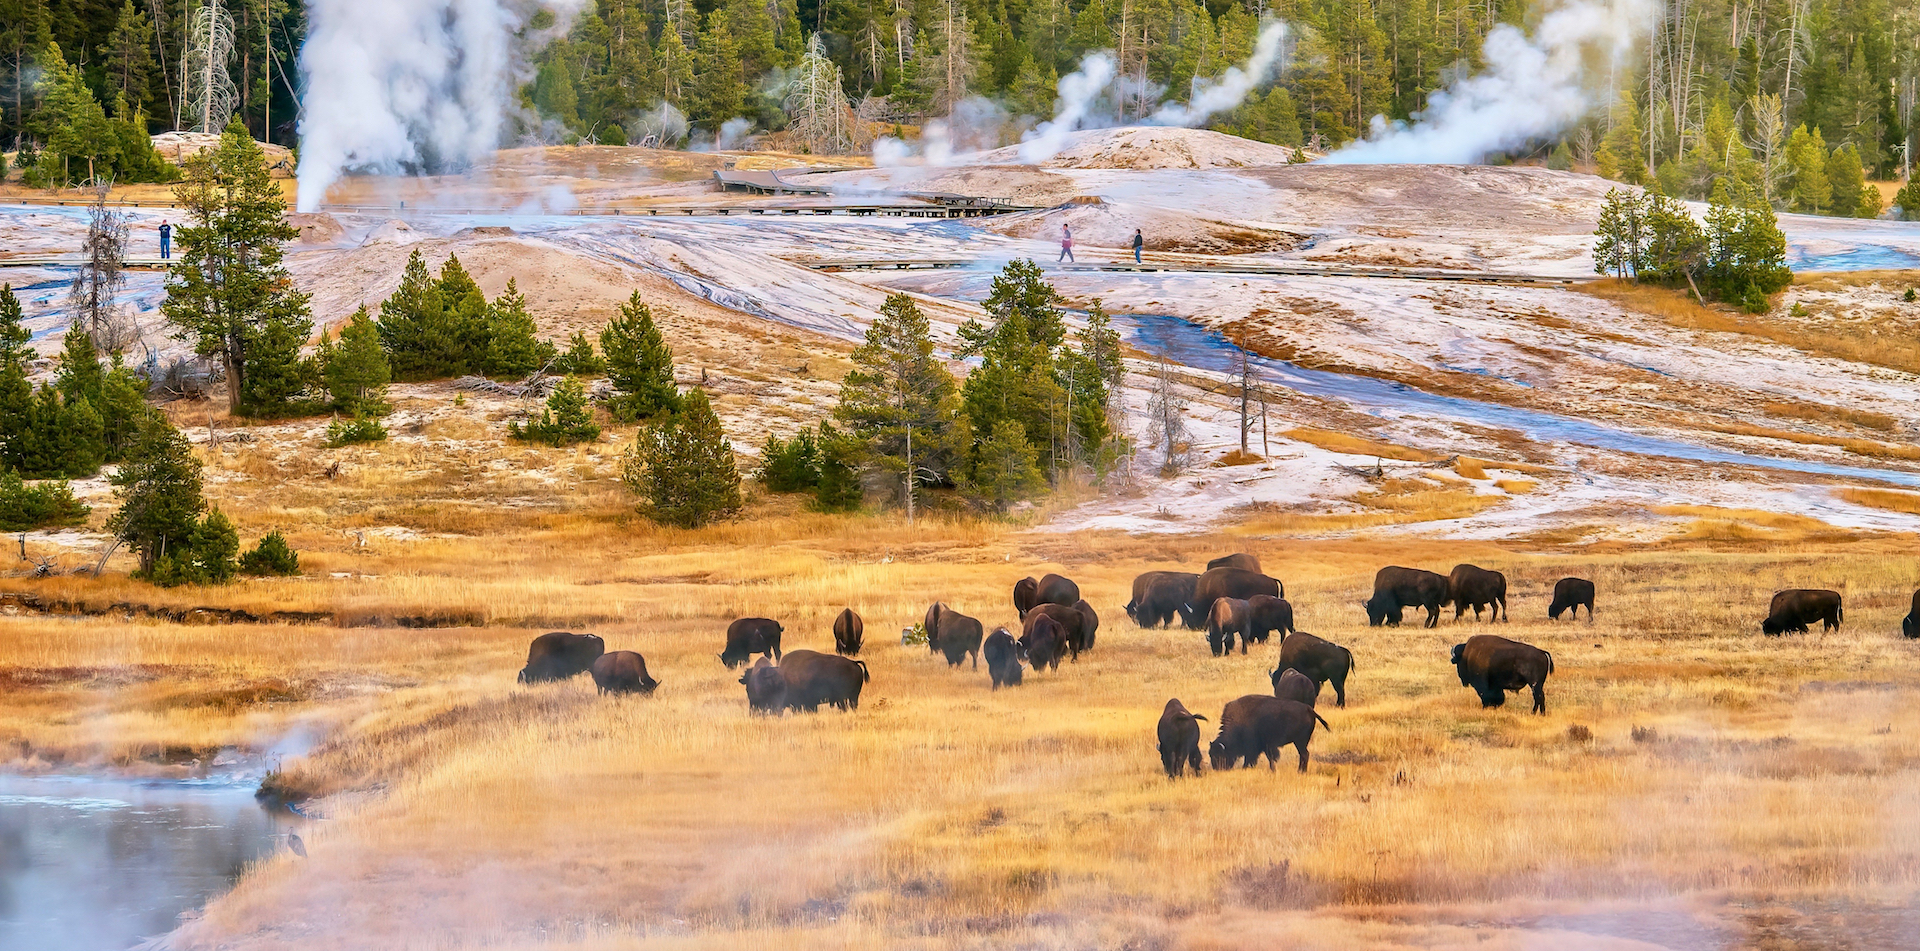 North America United States Wyoming Yellowstone National Park Bison